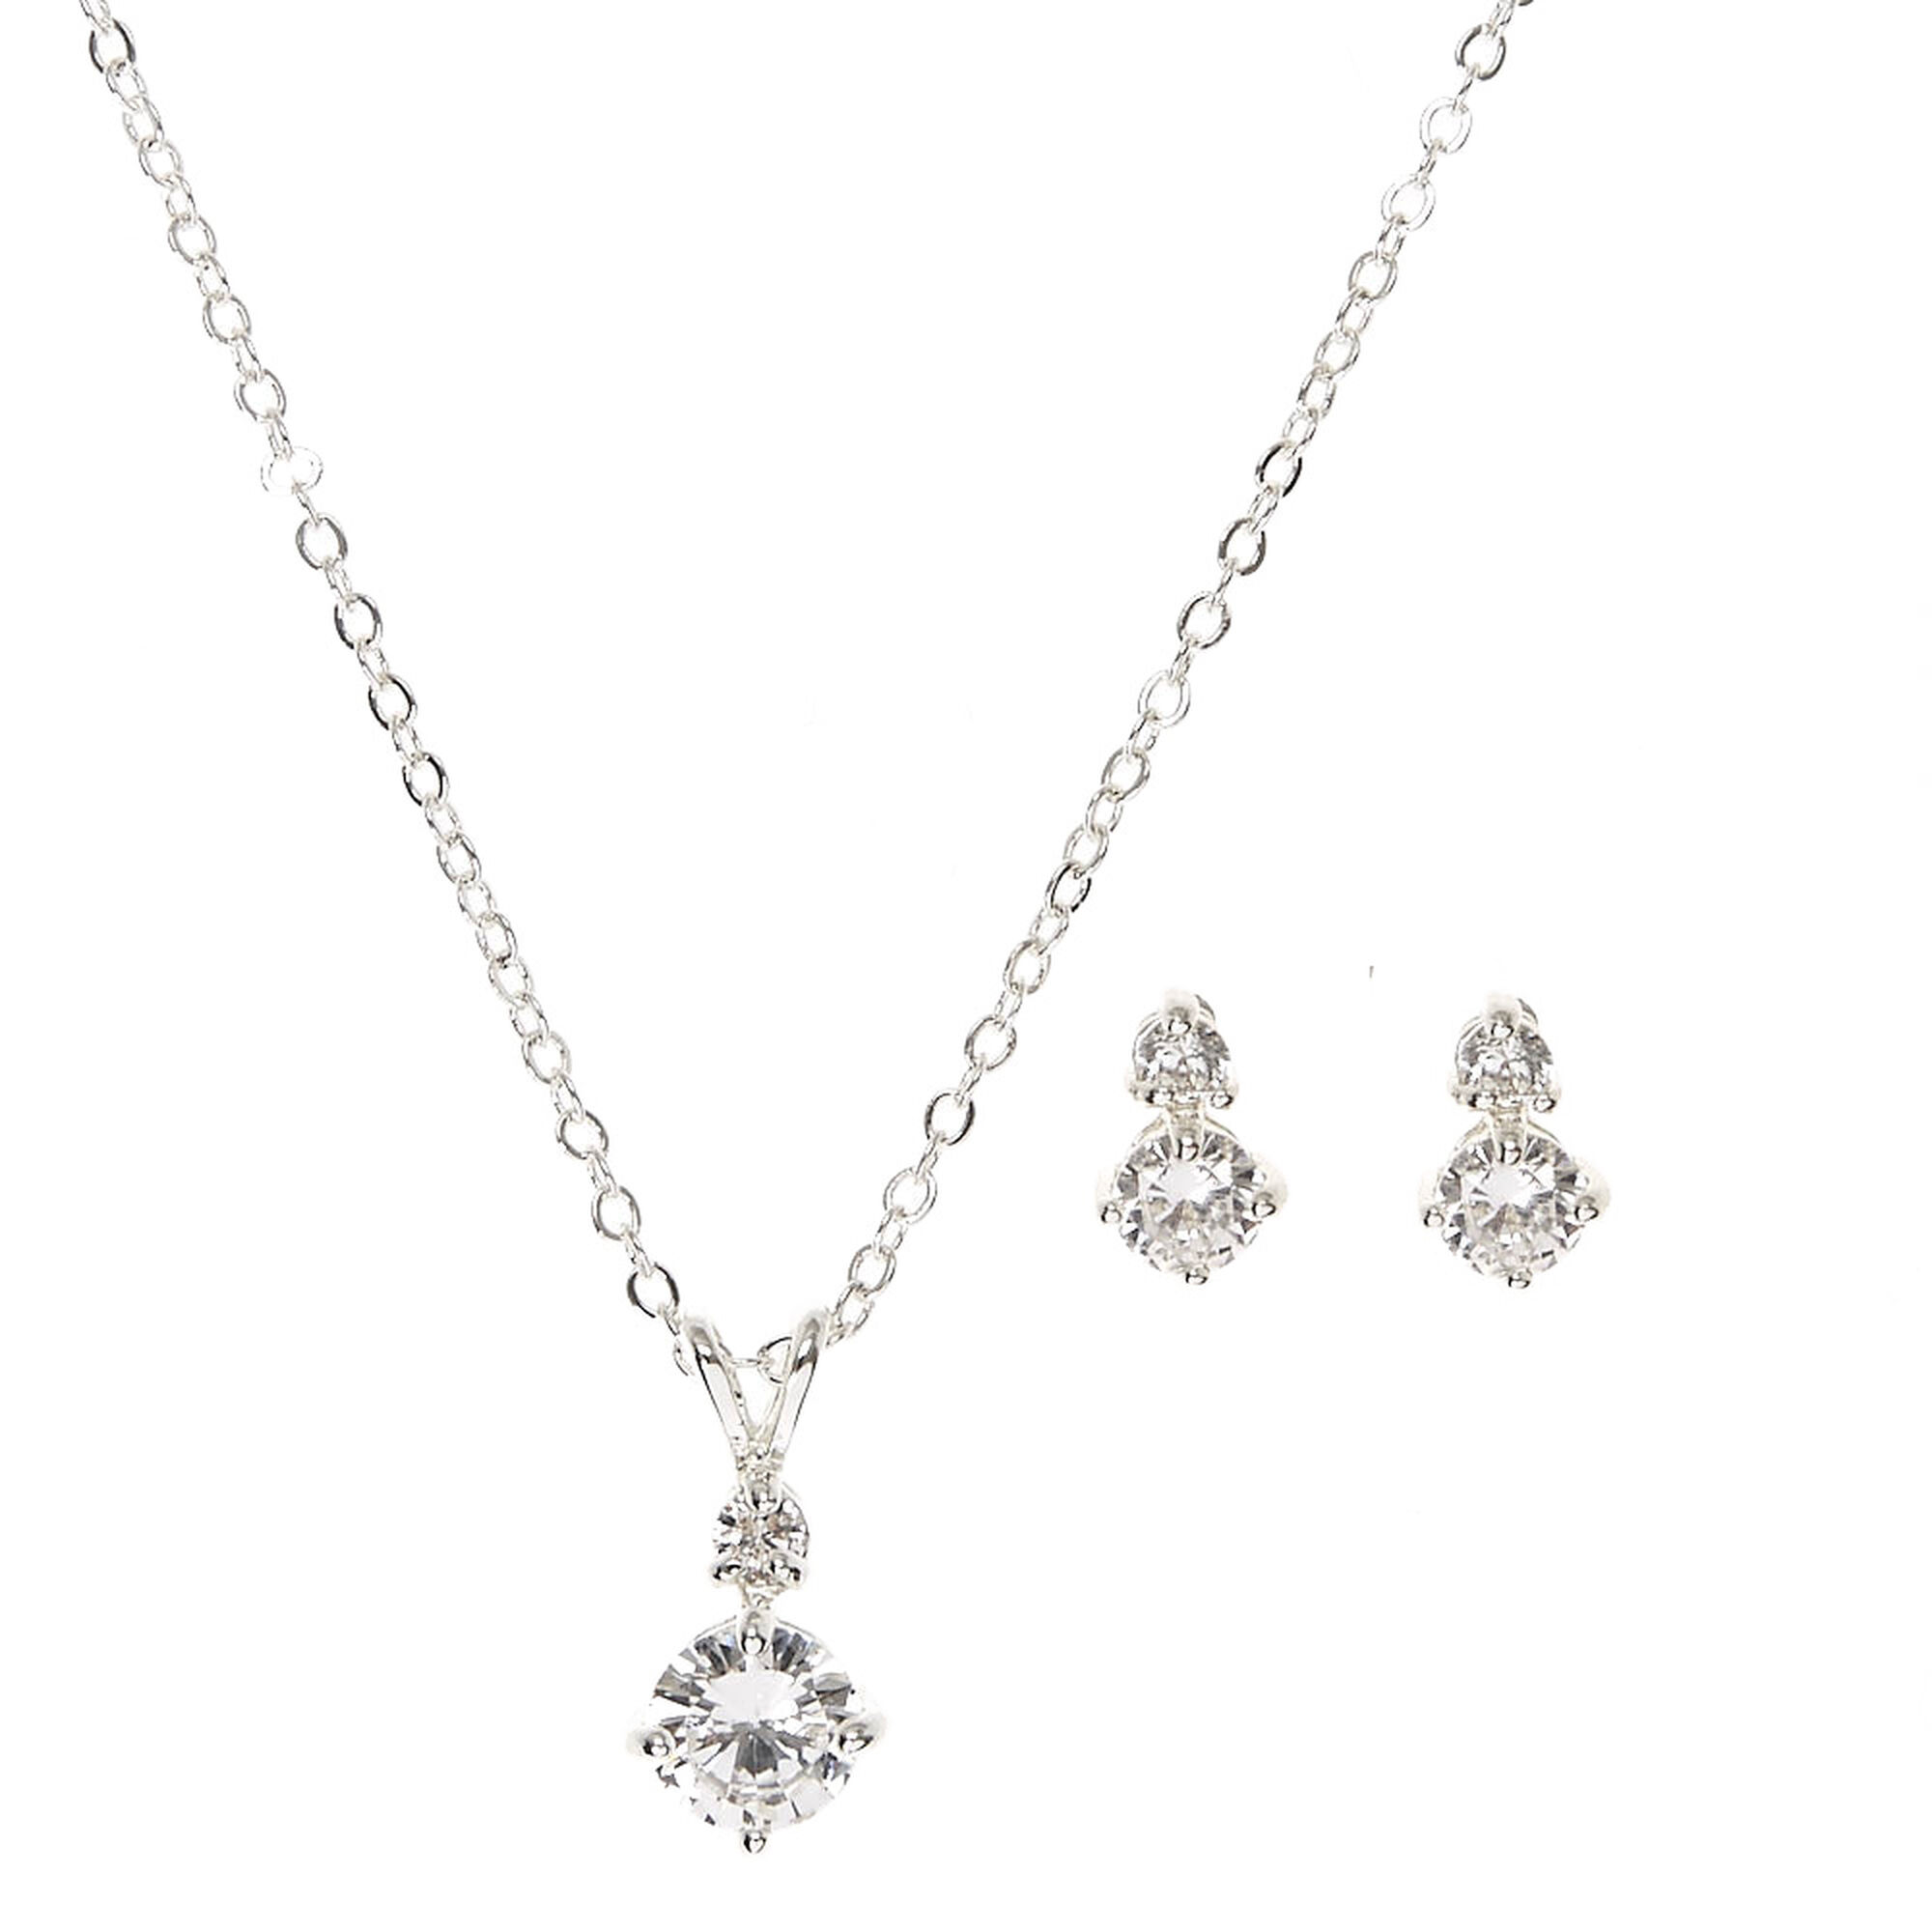 ab necklace in clear earrings swarovski cubic and drop zirconia vintage crystal